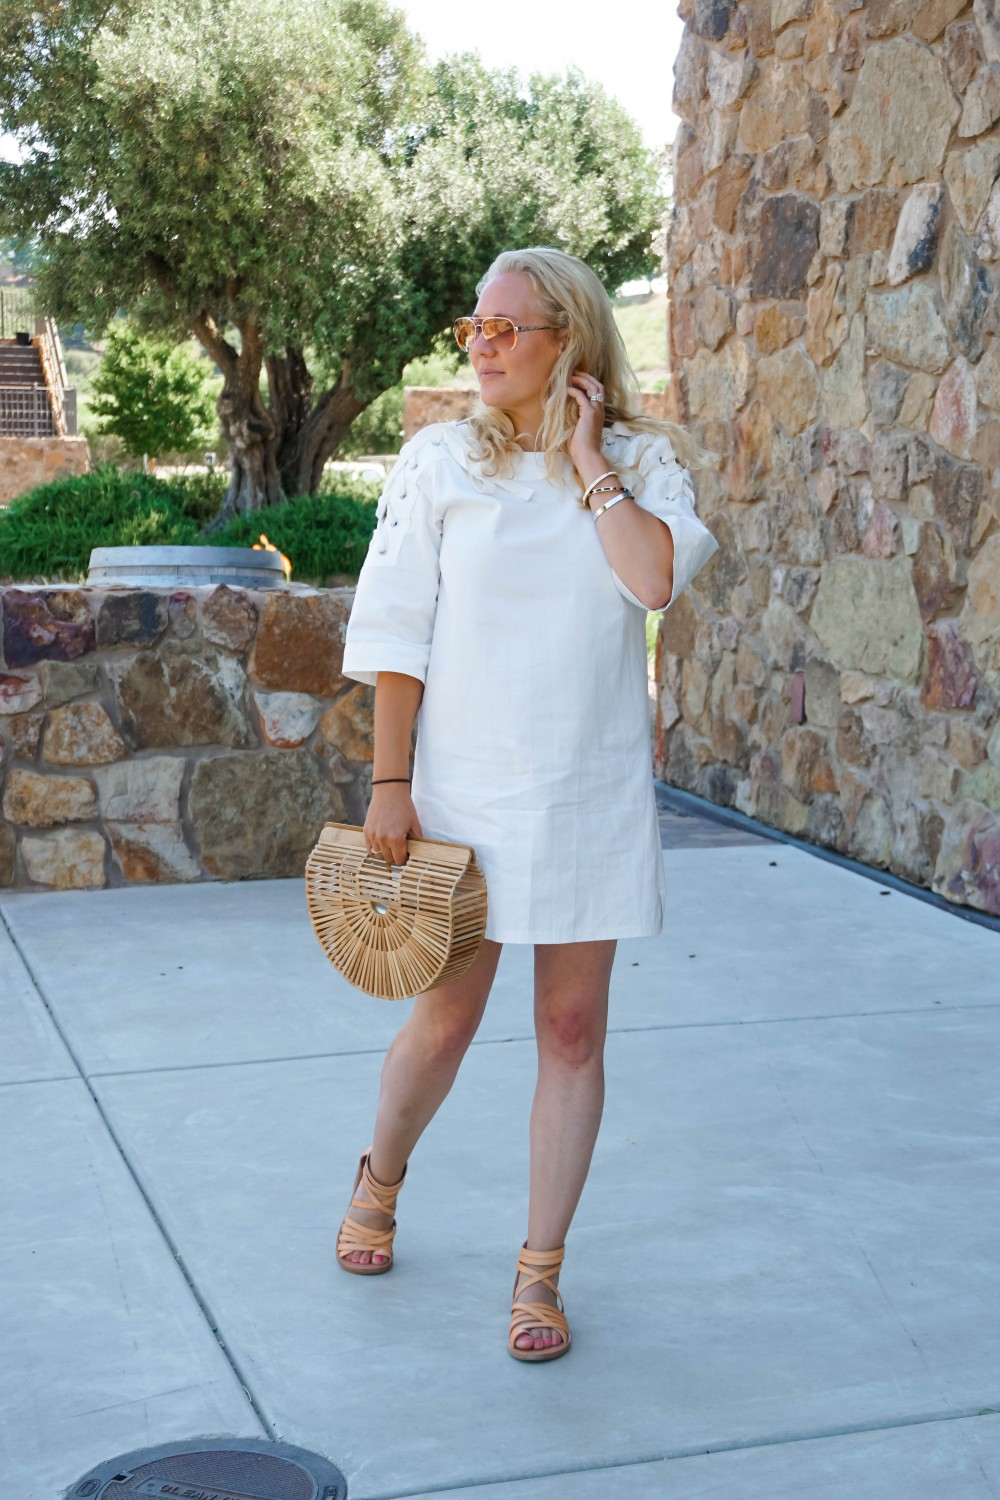 Lace-Up White Denim Dress-JOA Denim Dress-Summer Style-Bijou on the Park-Have Need Want-Outfit Inspiration-Mom Style 9